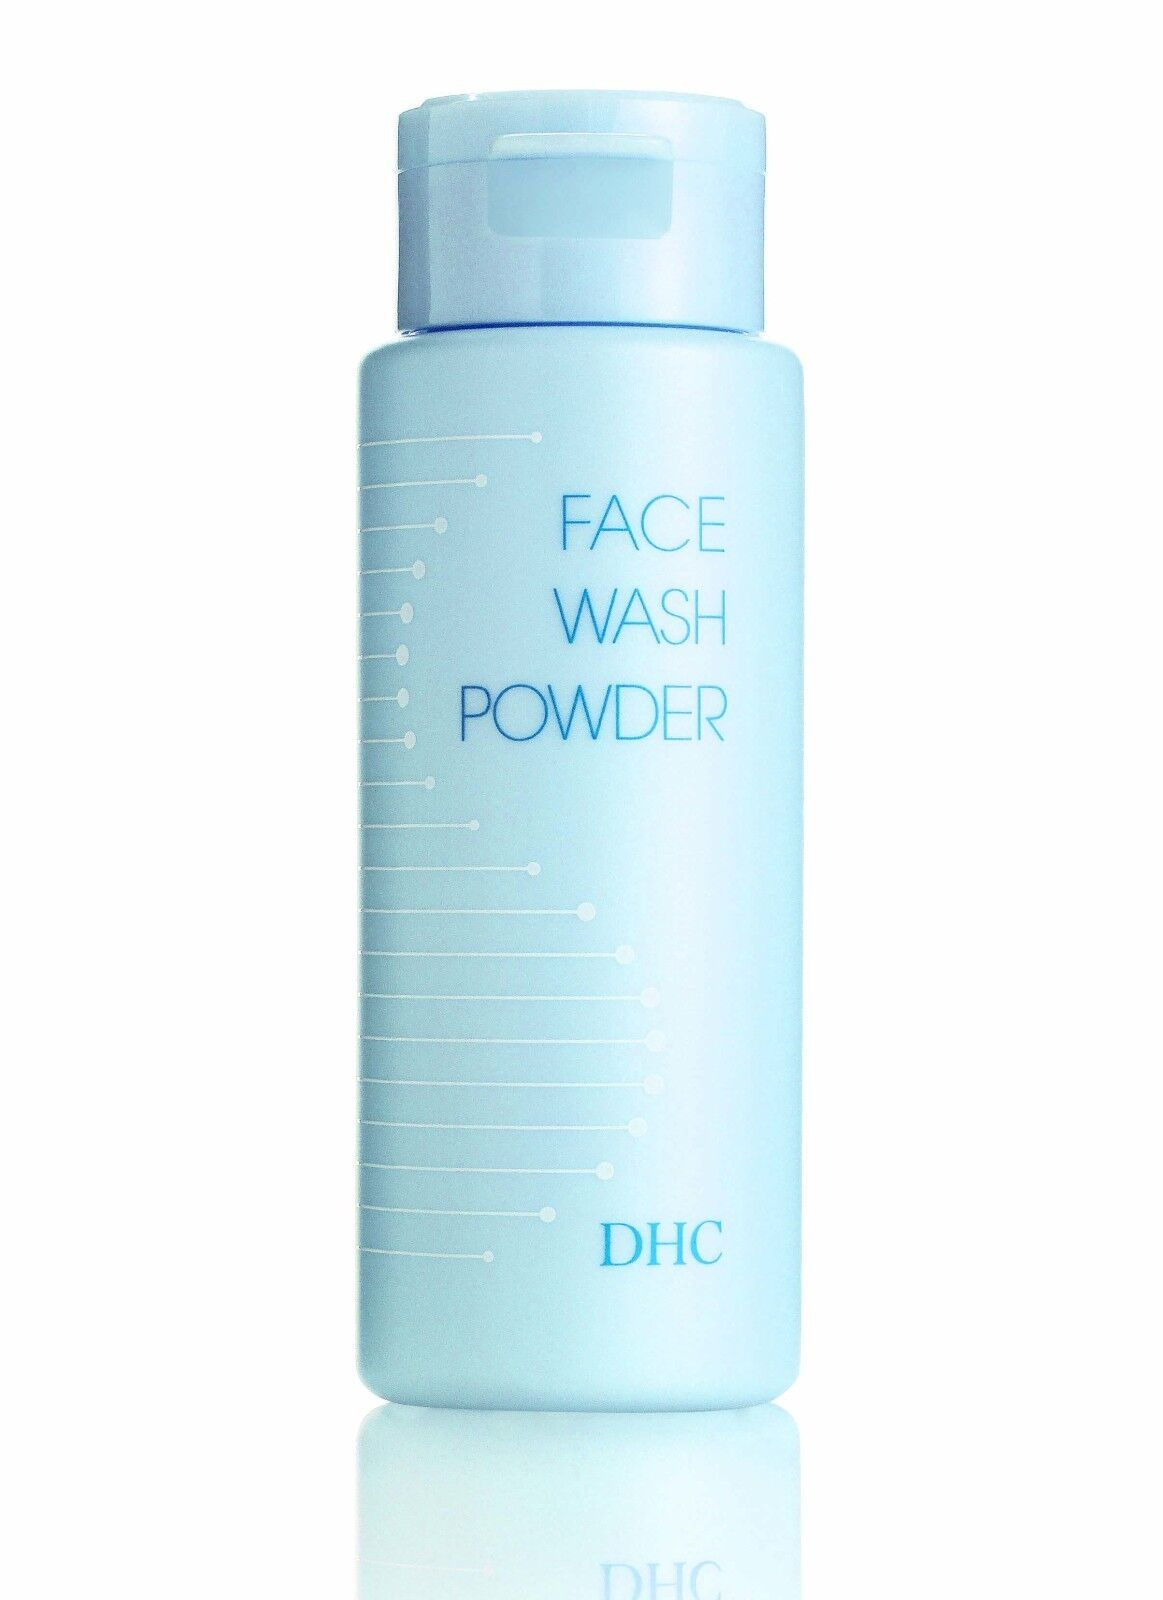 DHC Face Wash Powder 50g Made in Japan Free Shipping